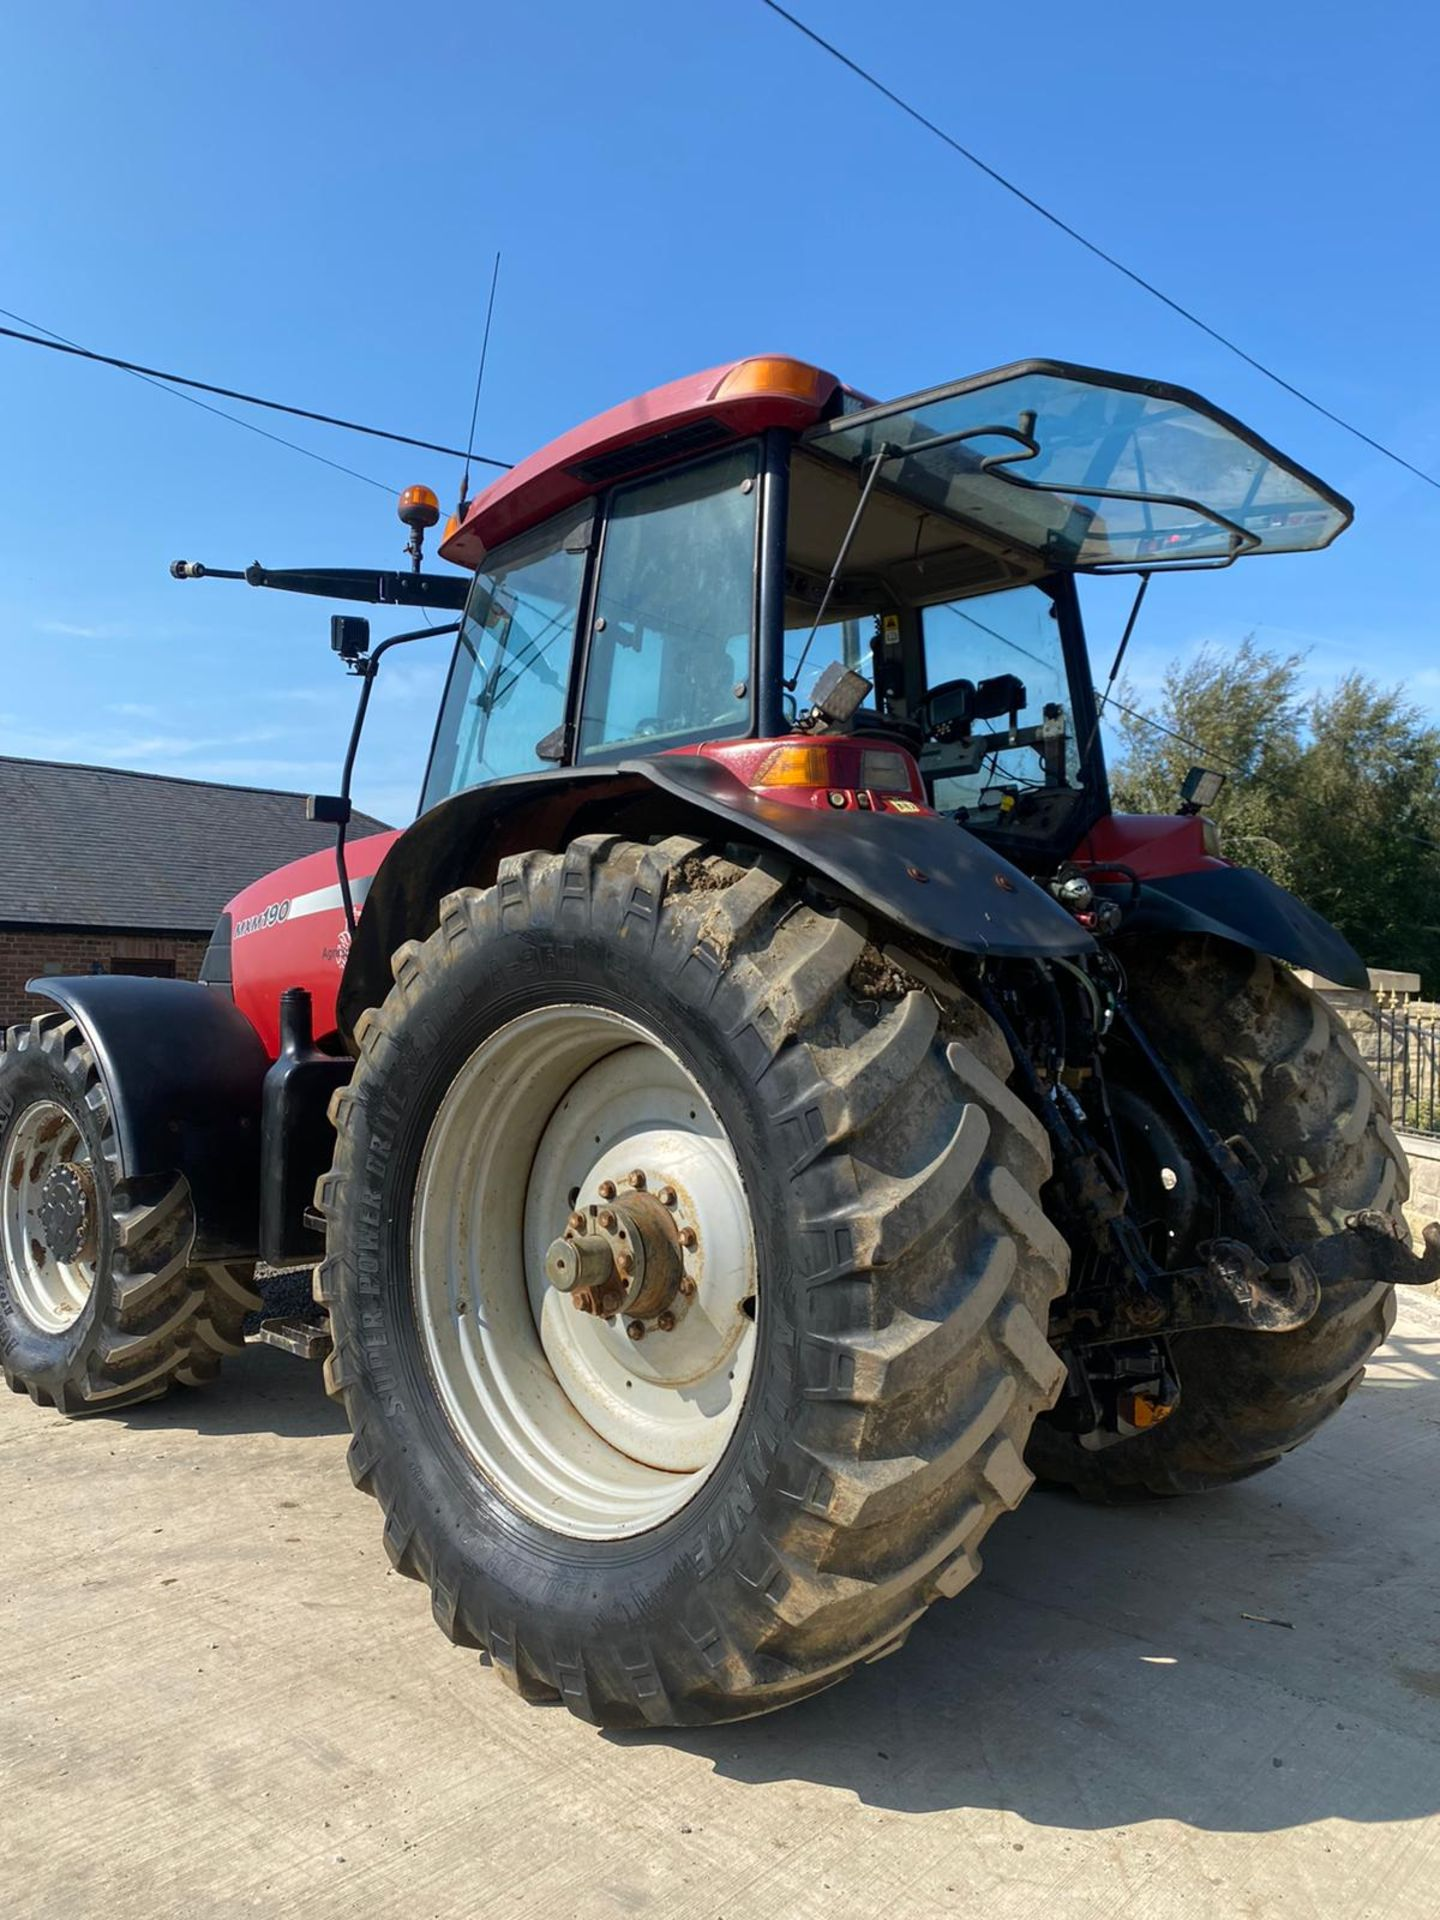 CASE MXM190 TRACTOR, VERY GOOD TYRES, TRANSPORT BOX ON THE FRONT, FRONT SUSPENSION *PLUS VAT* - Image 5 of 11